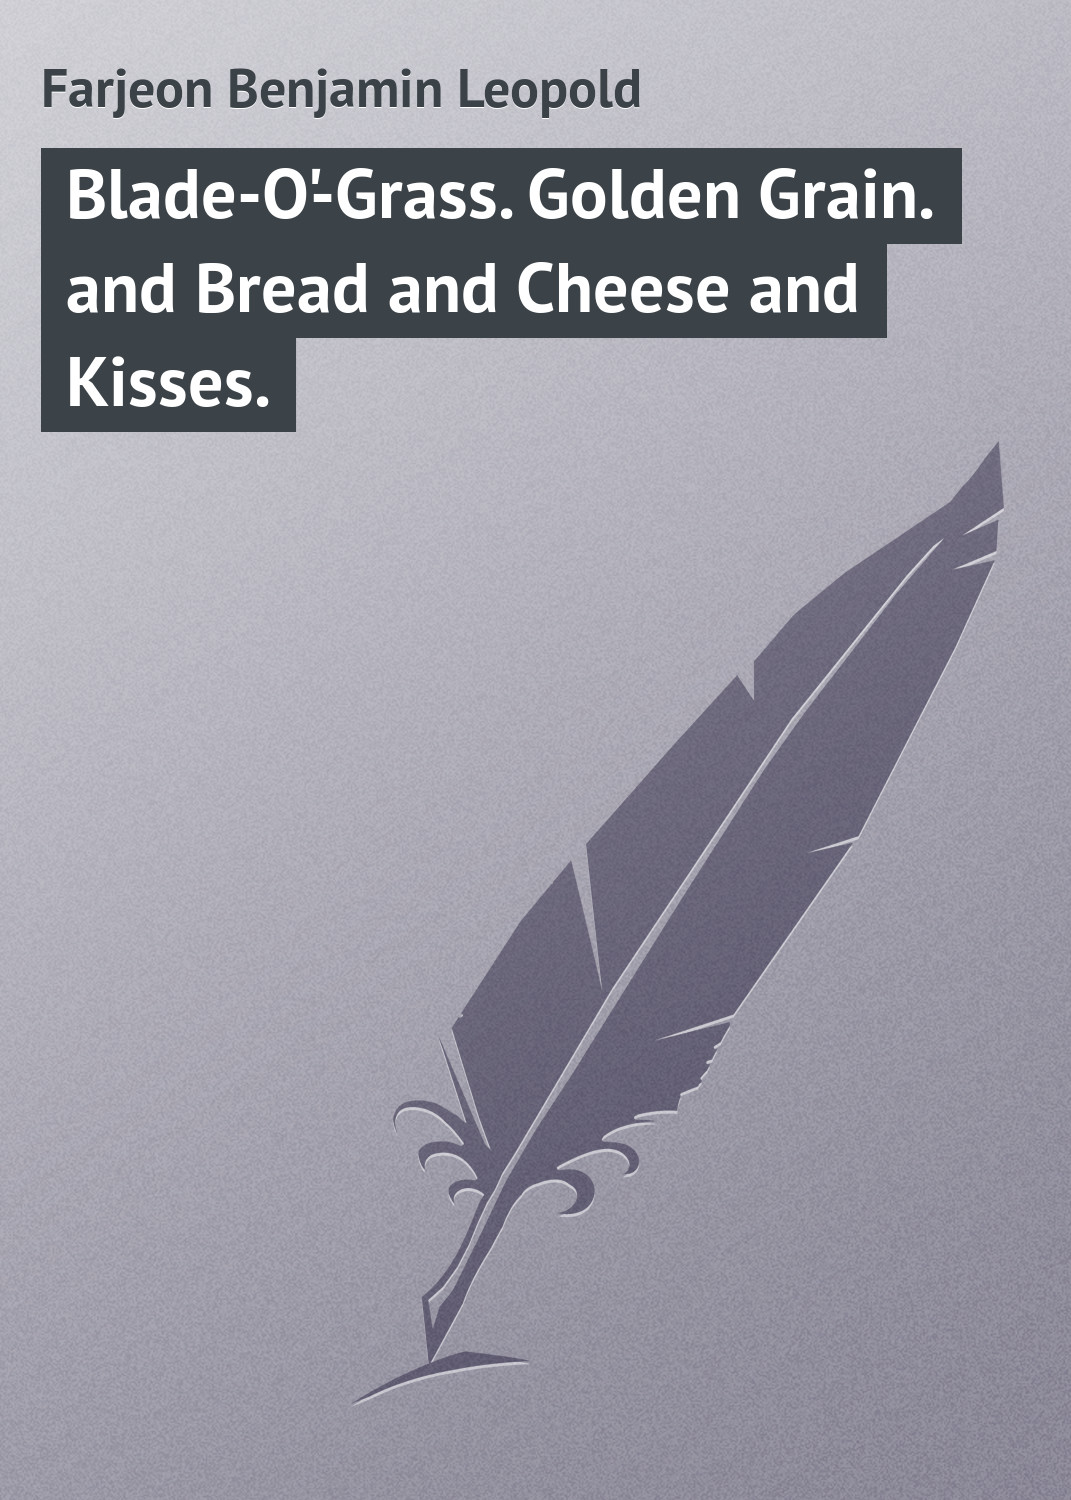 Farjeon Benjamin Leopold Blade-O'-Grass. Golden Grain. and Bread and Cheese and Kisses.